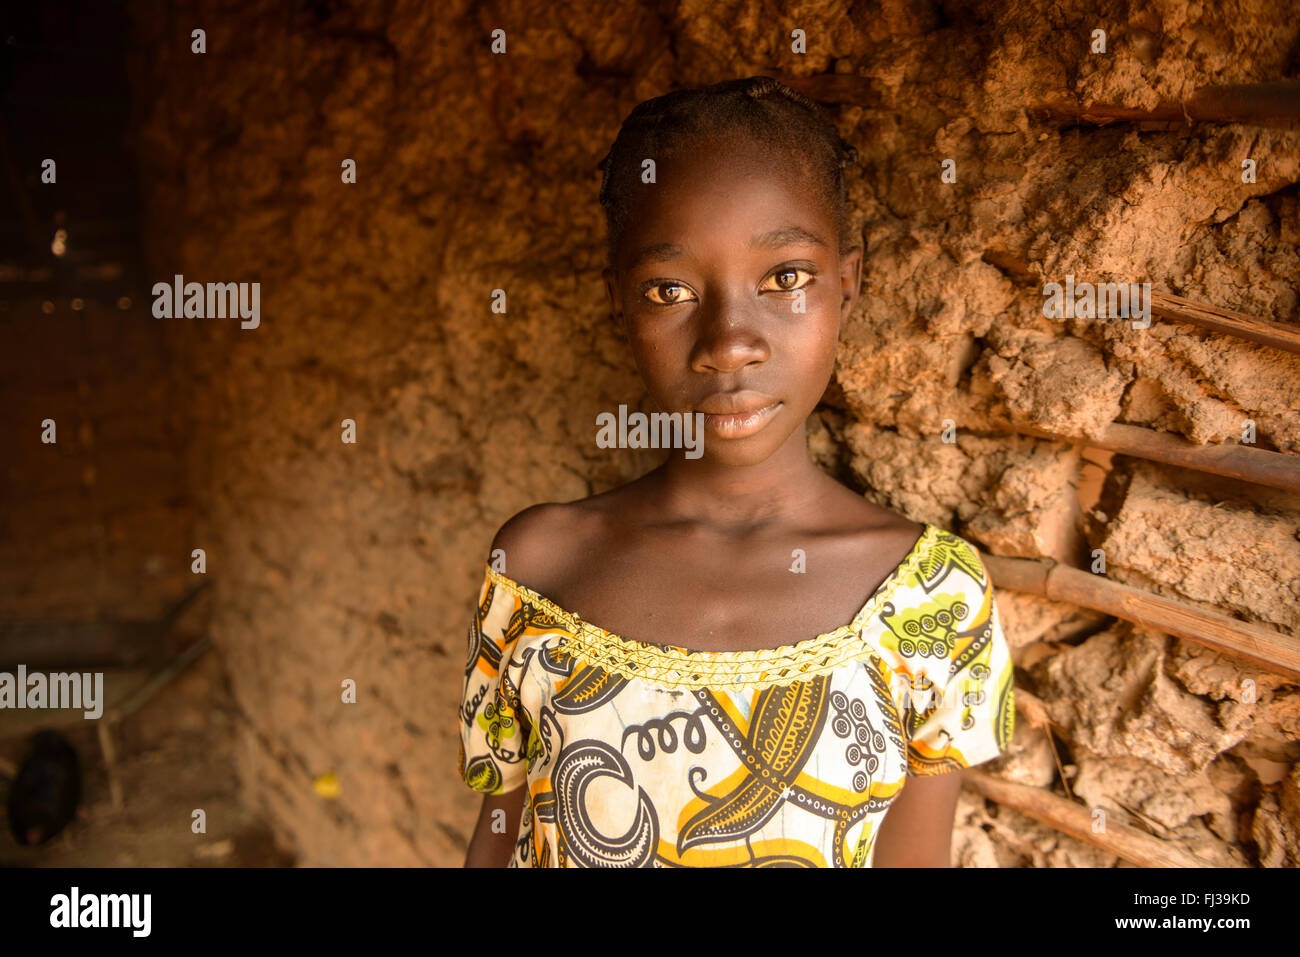 UNHCR refugee camp for the Fulani people, Cameroon, Africa - Stock Image